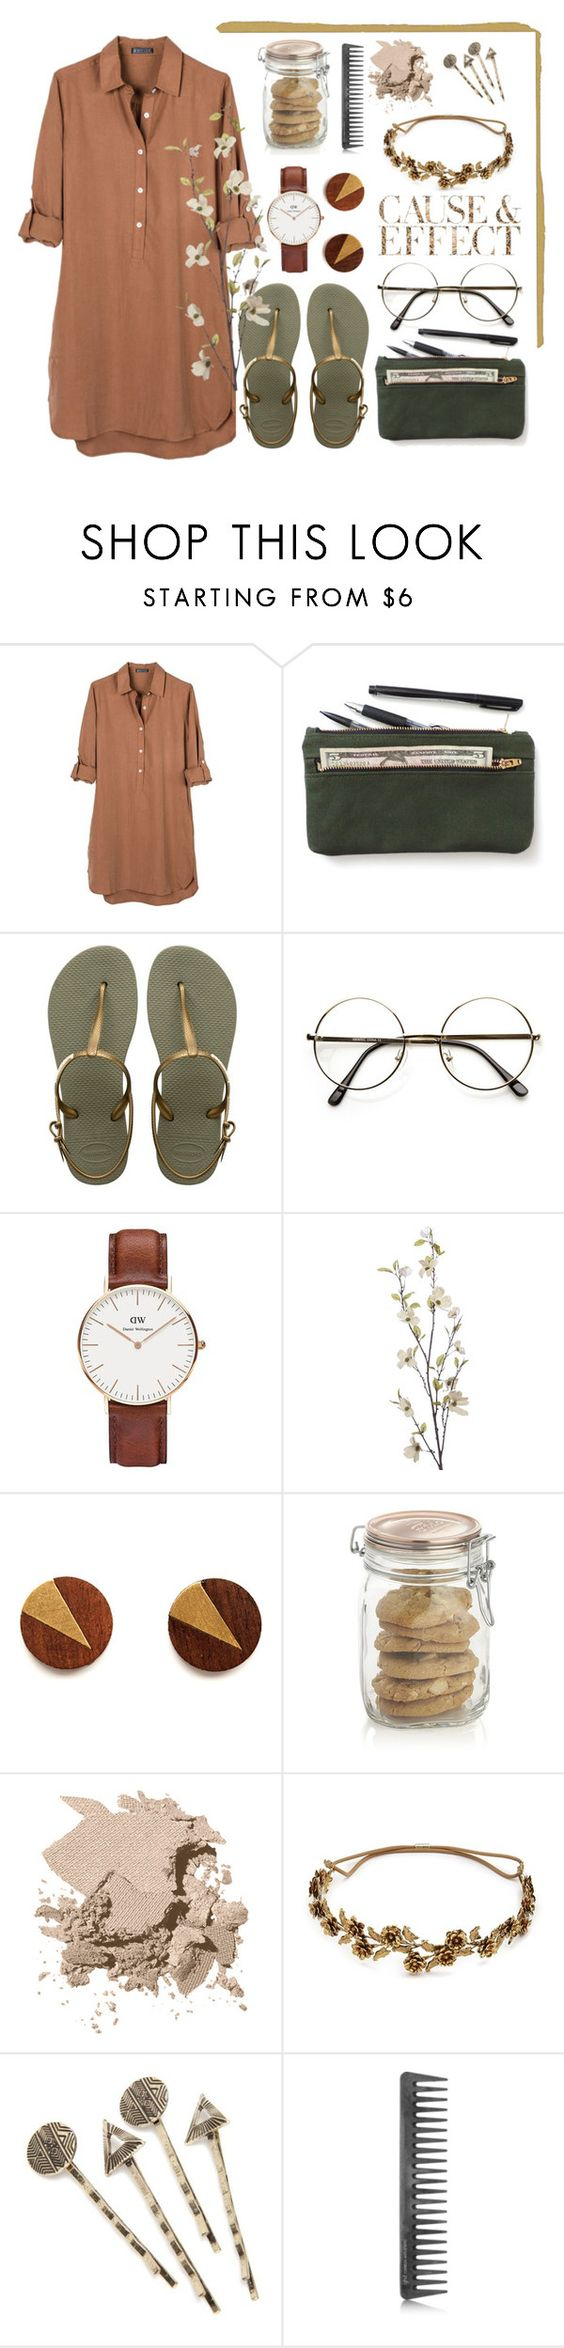 """Banbury Tencel dress"" by amn-d ❤ liked on Polyvore featuring United by Blue, Havaianas, ZeroUV, Daniel Wellington, Pier 1 Imports, Crate and Barrel, Bobbi Brown Cosmetics, Envi, Jennifer Behr and Red Camel"